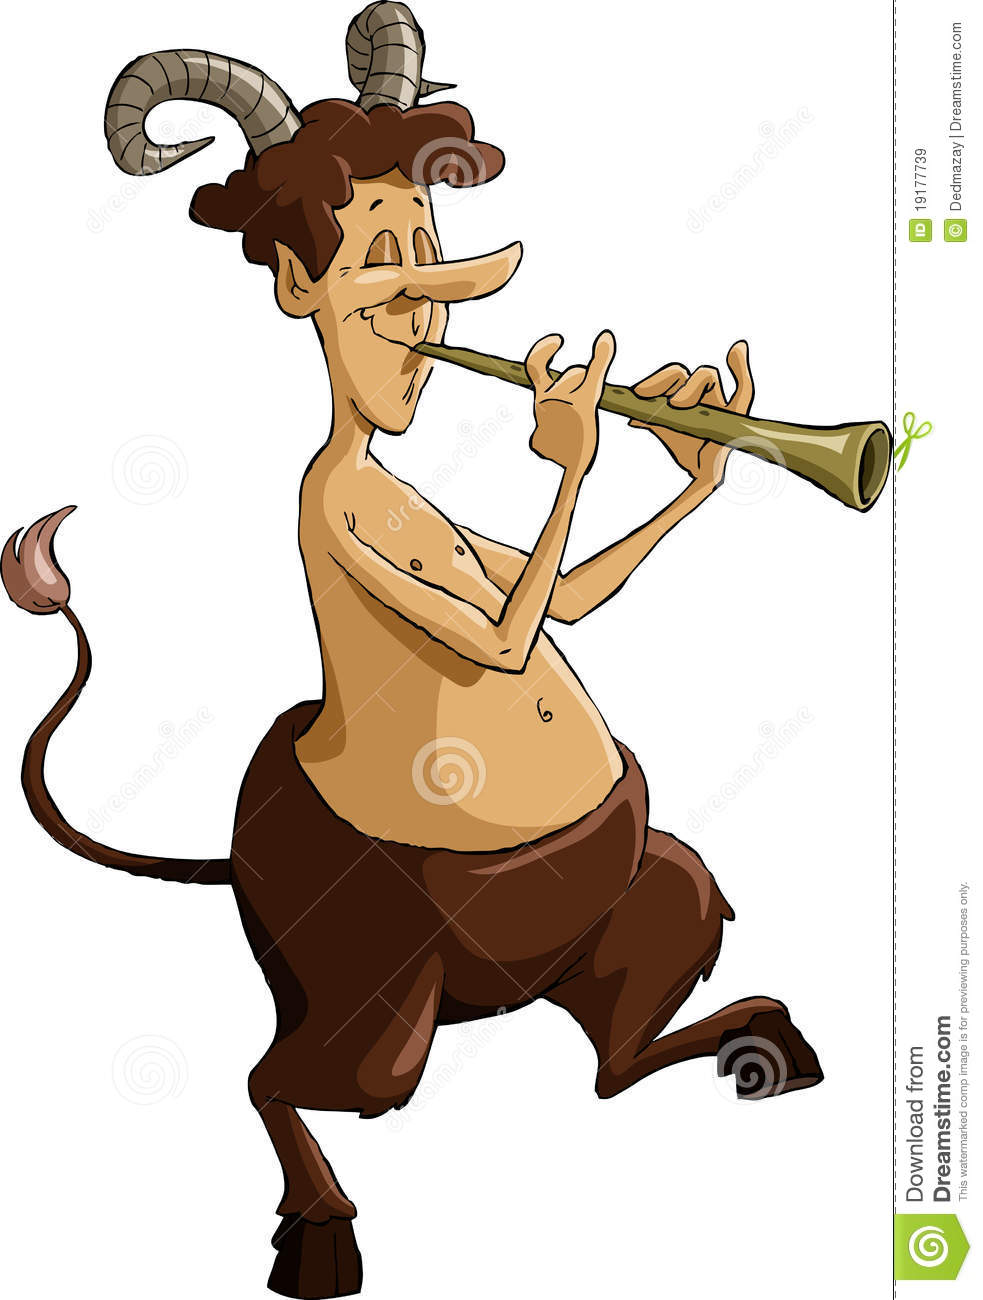 Faun Royalty Free Stock Images.